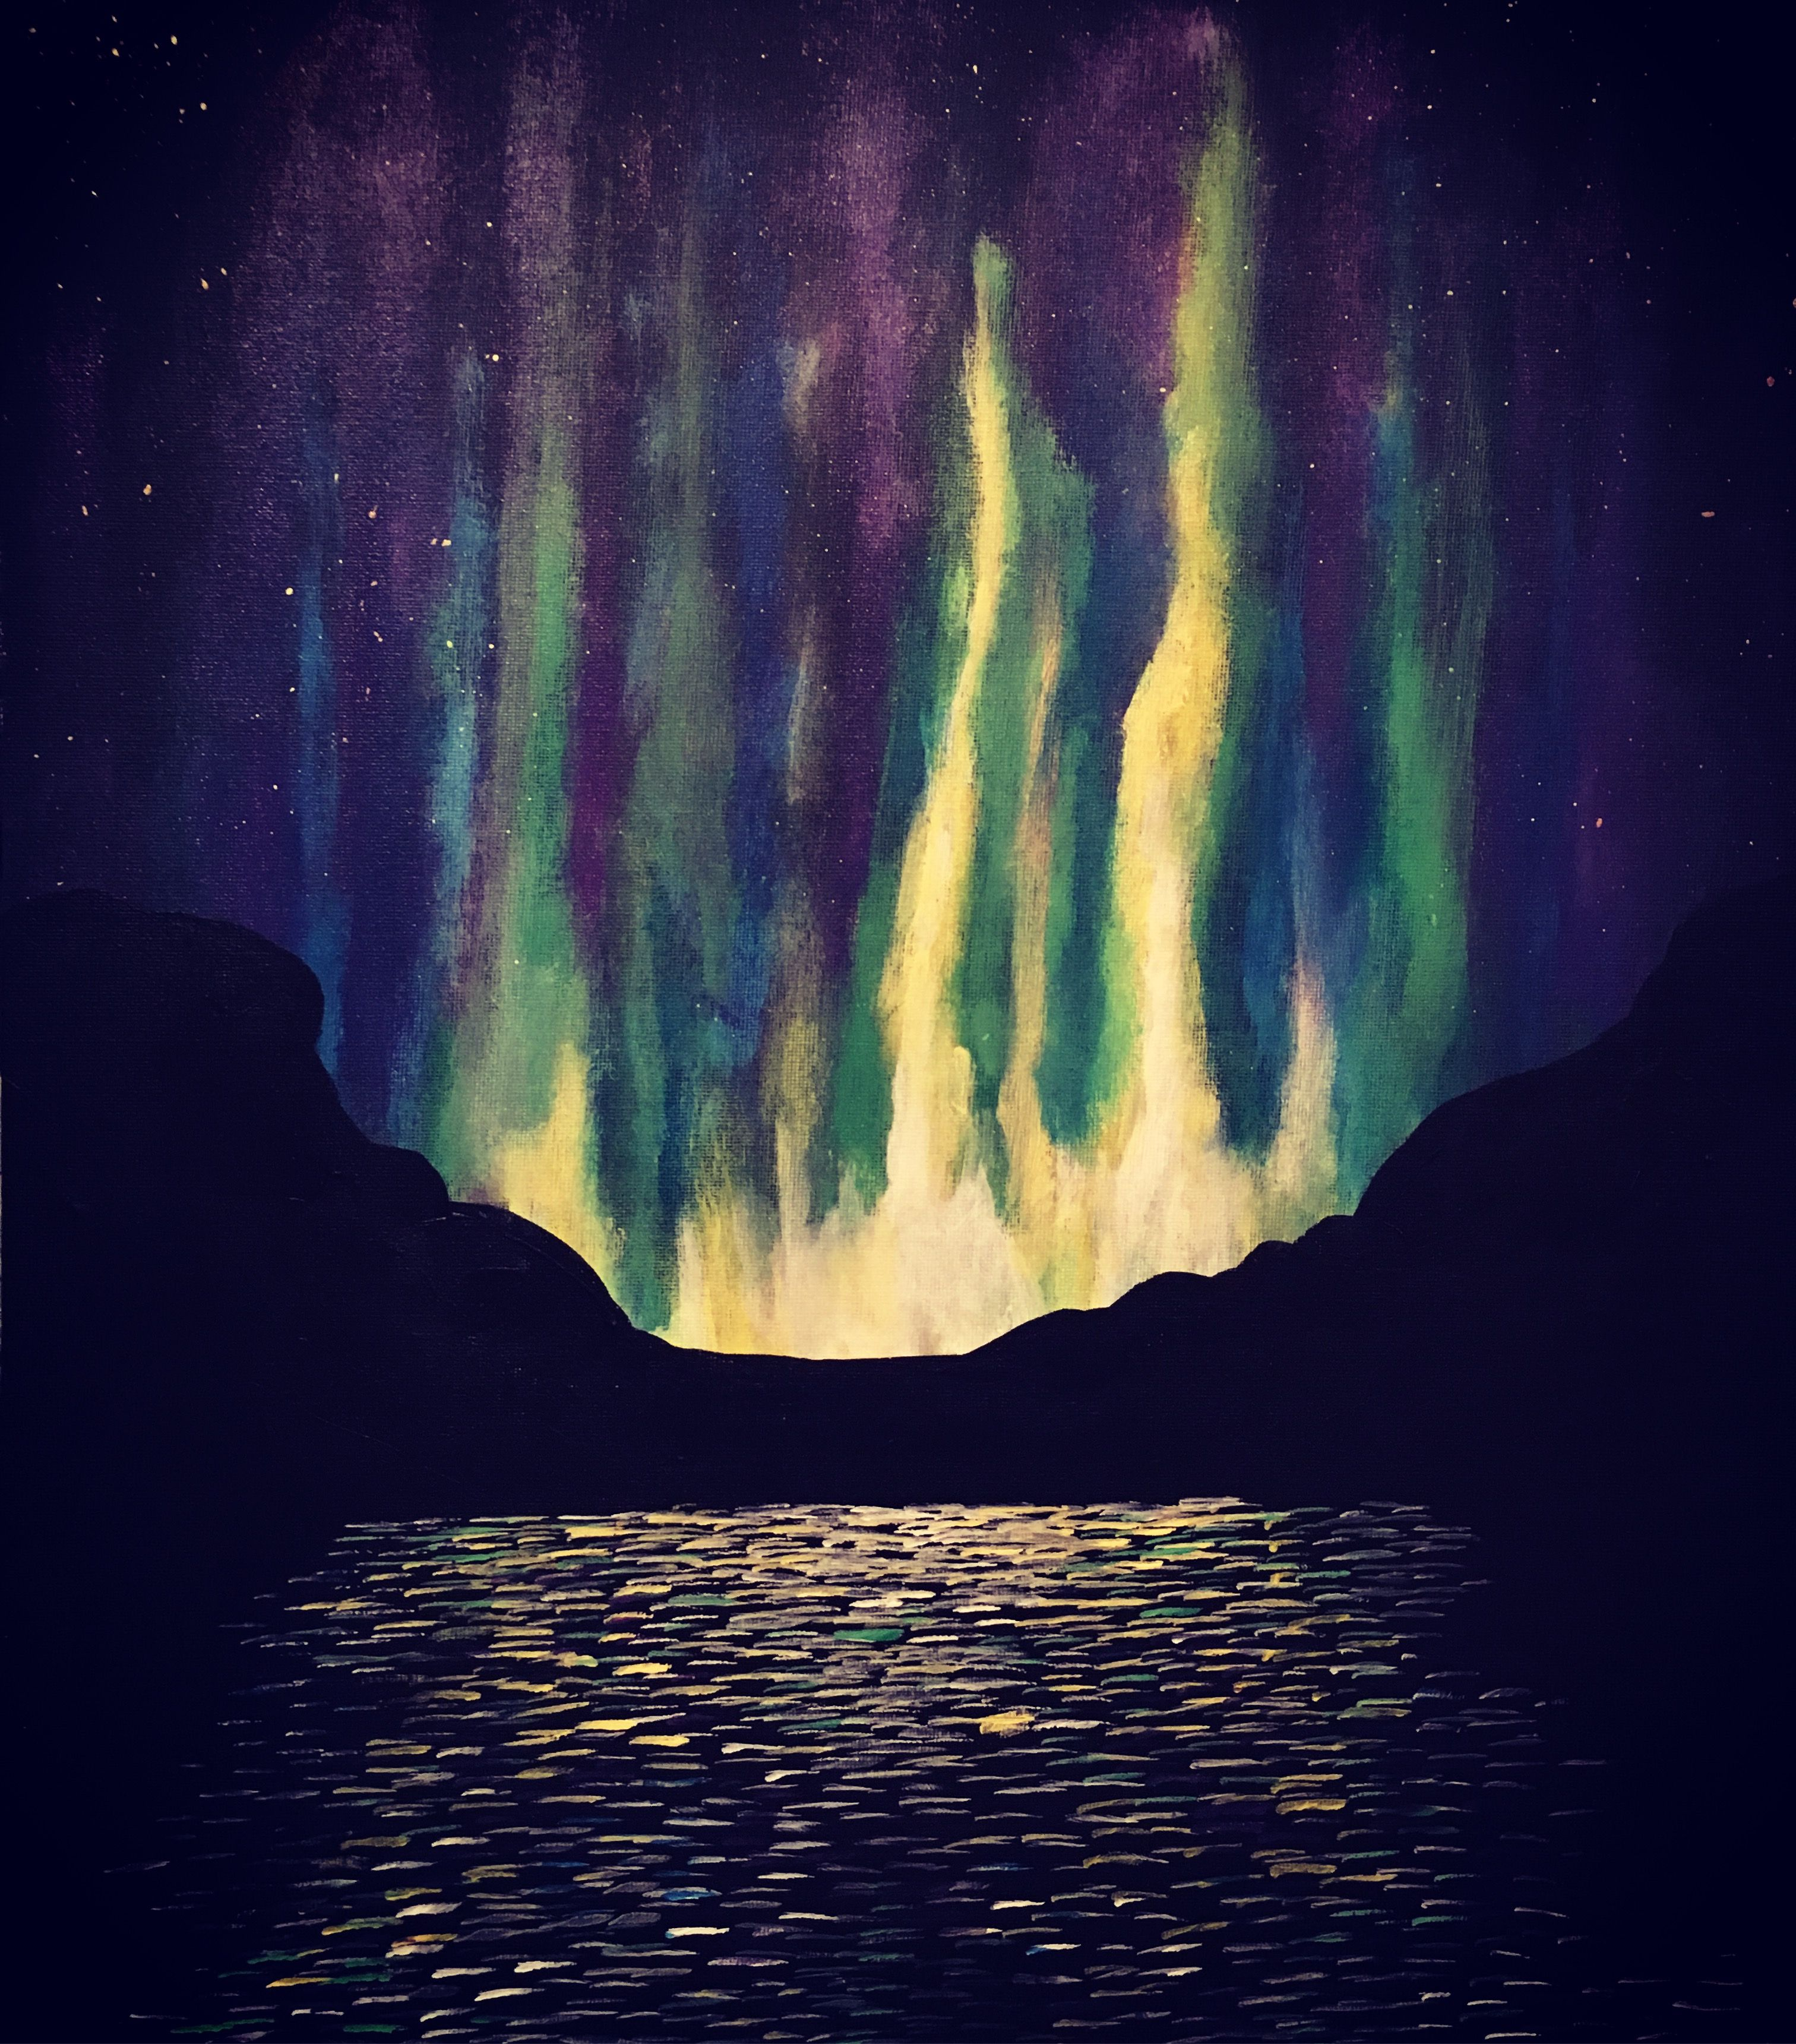 Northern lights painted on canvas with acrylic, by Mona Nyhaugen.